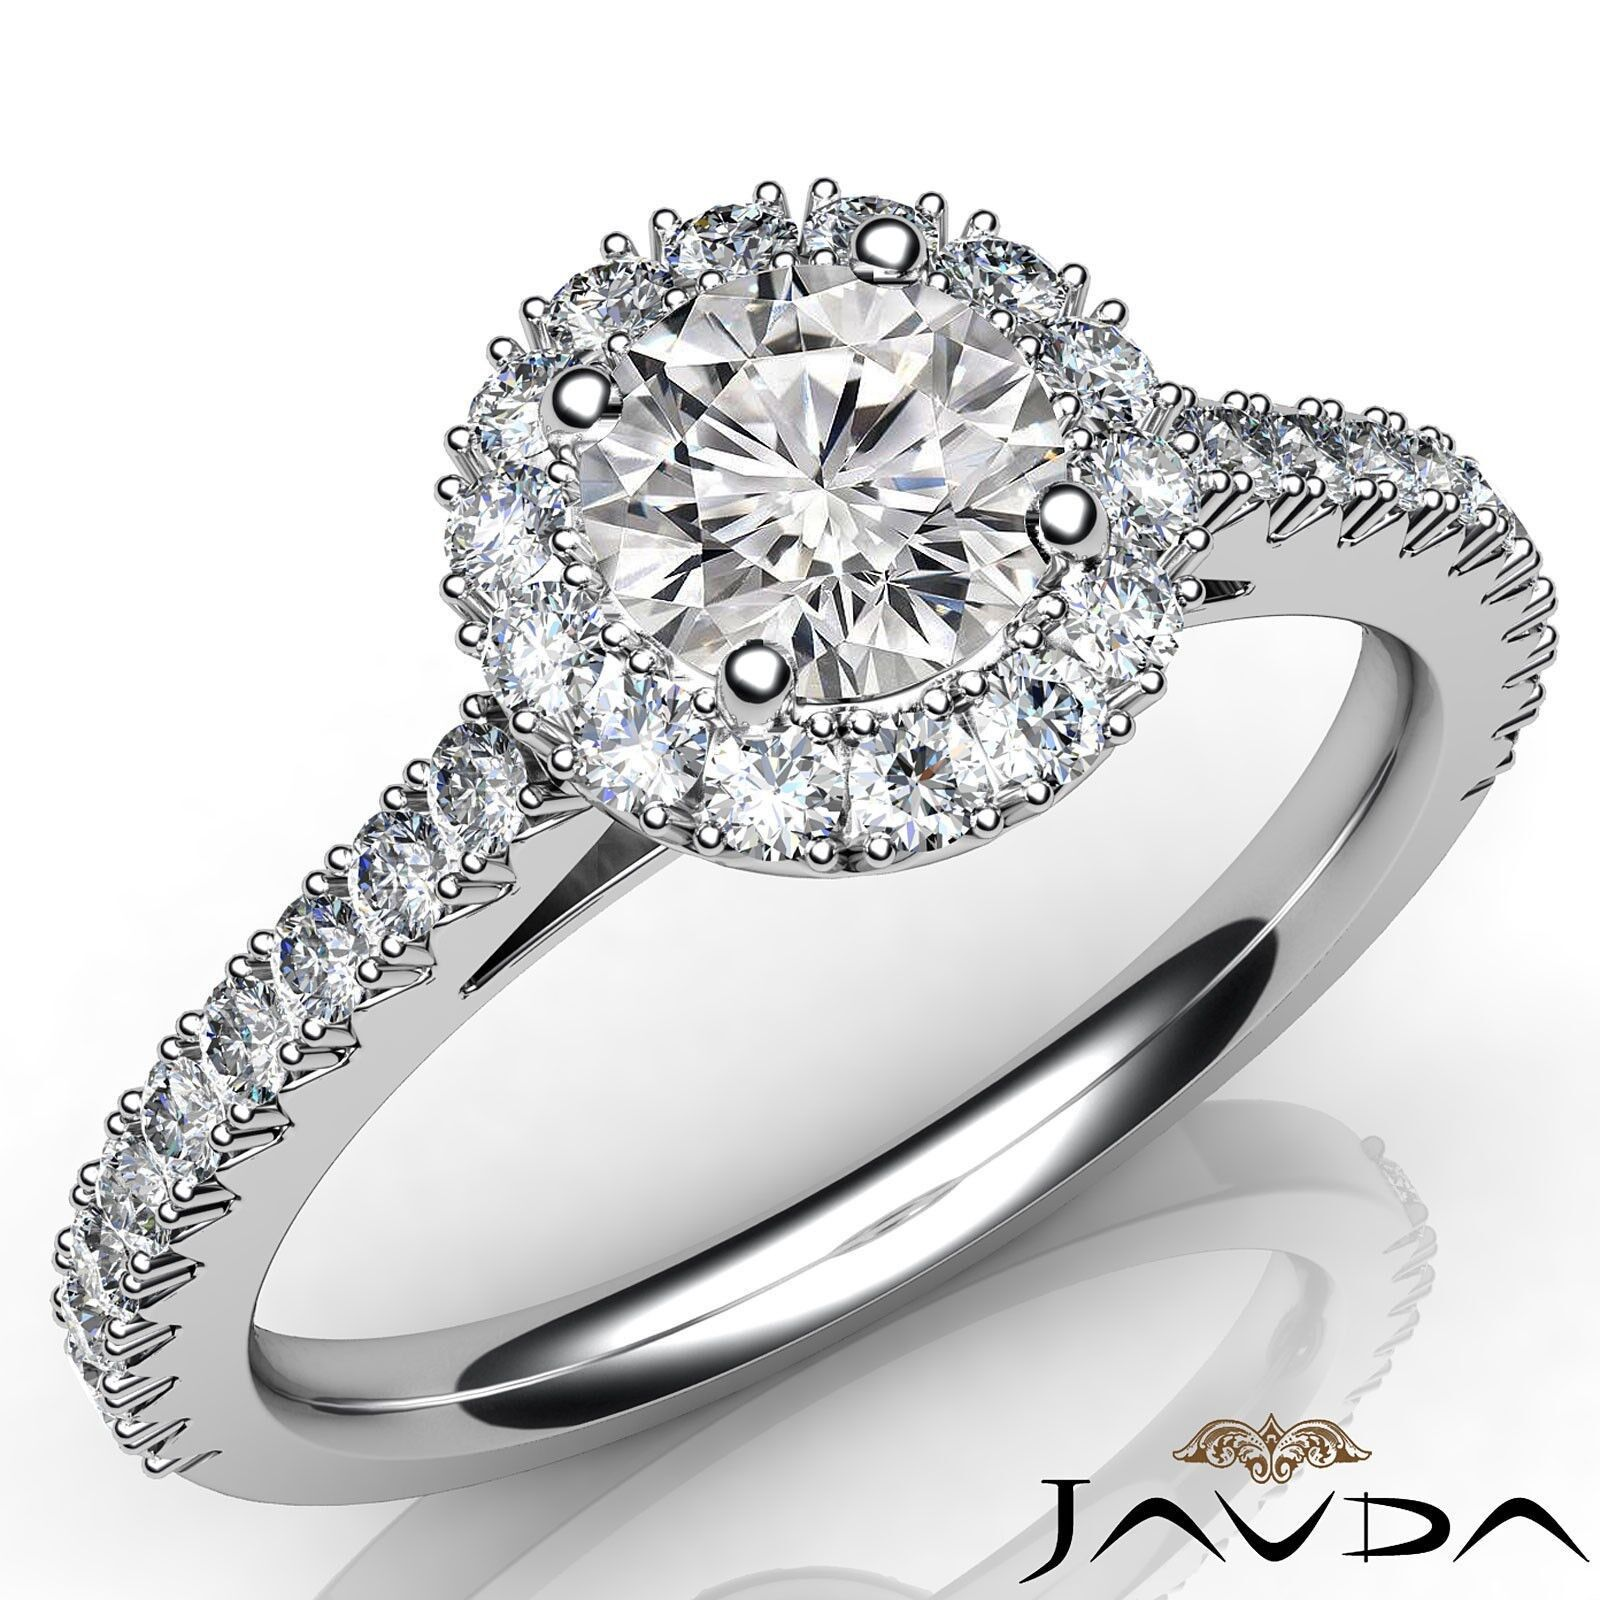 Halo Round Shape French Pave Set Diamond Engagement Ring GIA D Color SI1 1.5 Ct